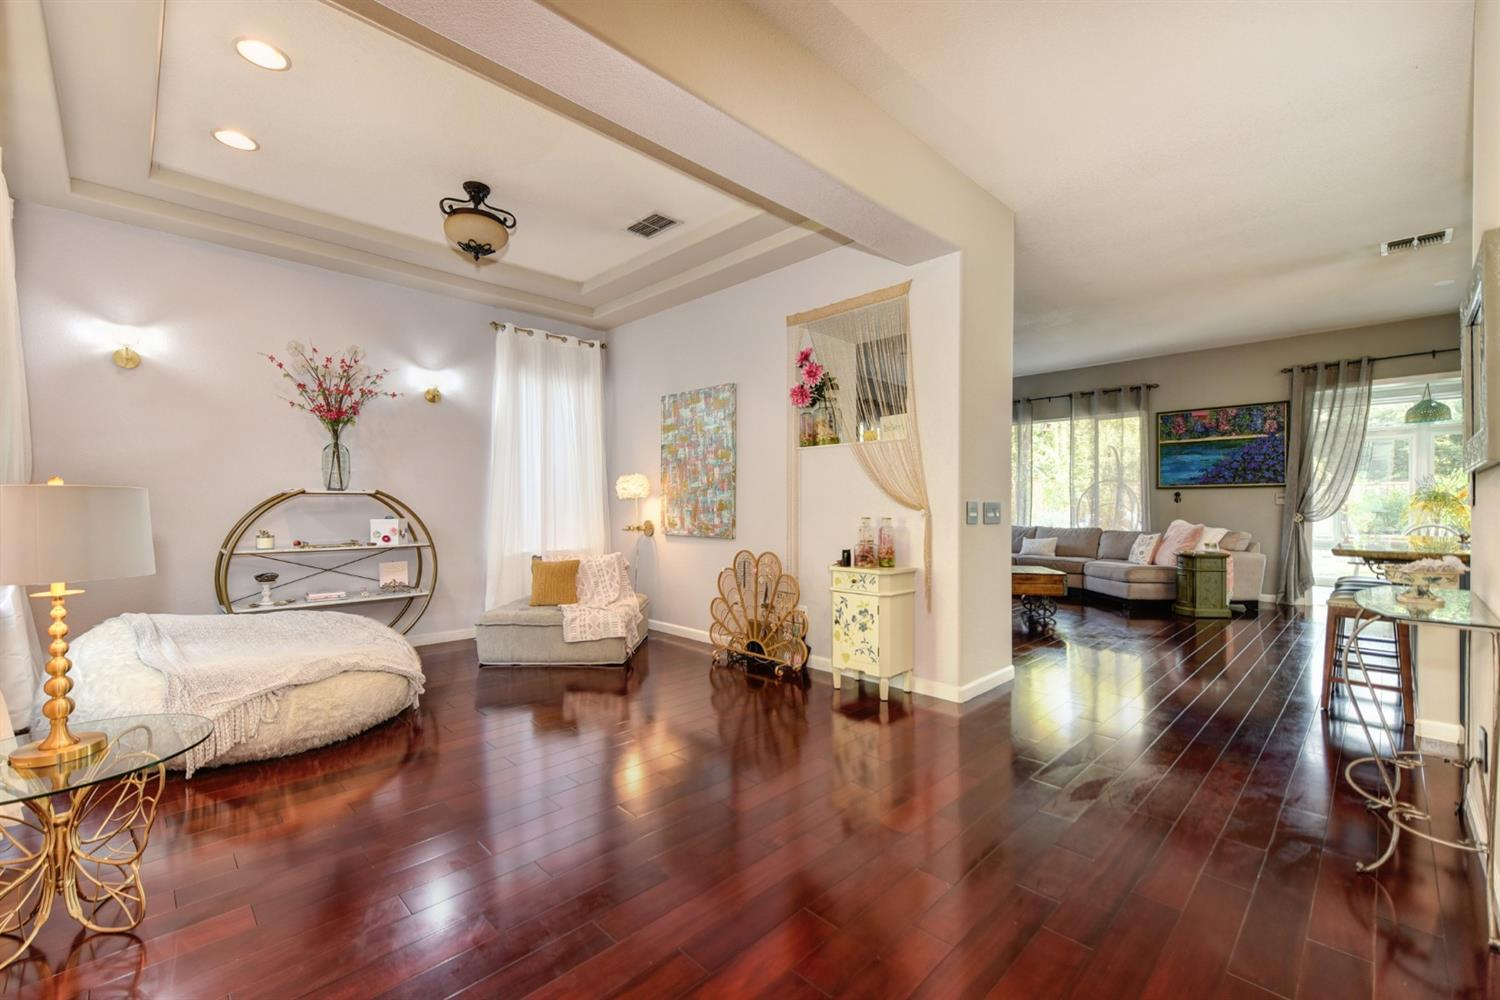 Photo 5 for Listing #221120681